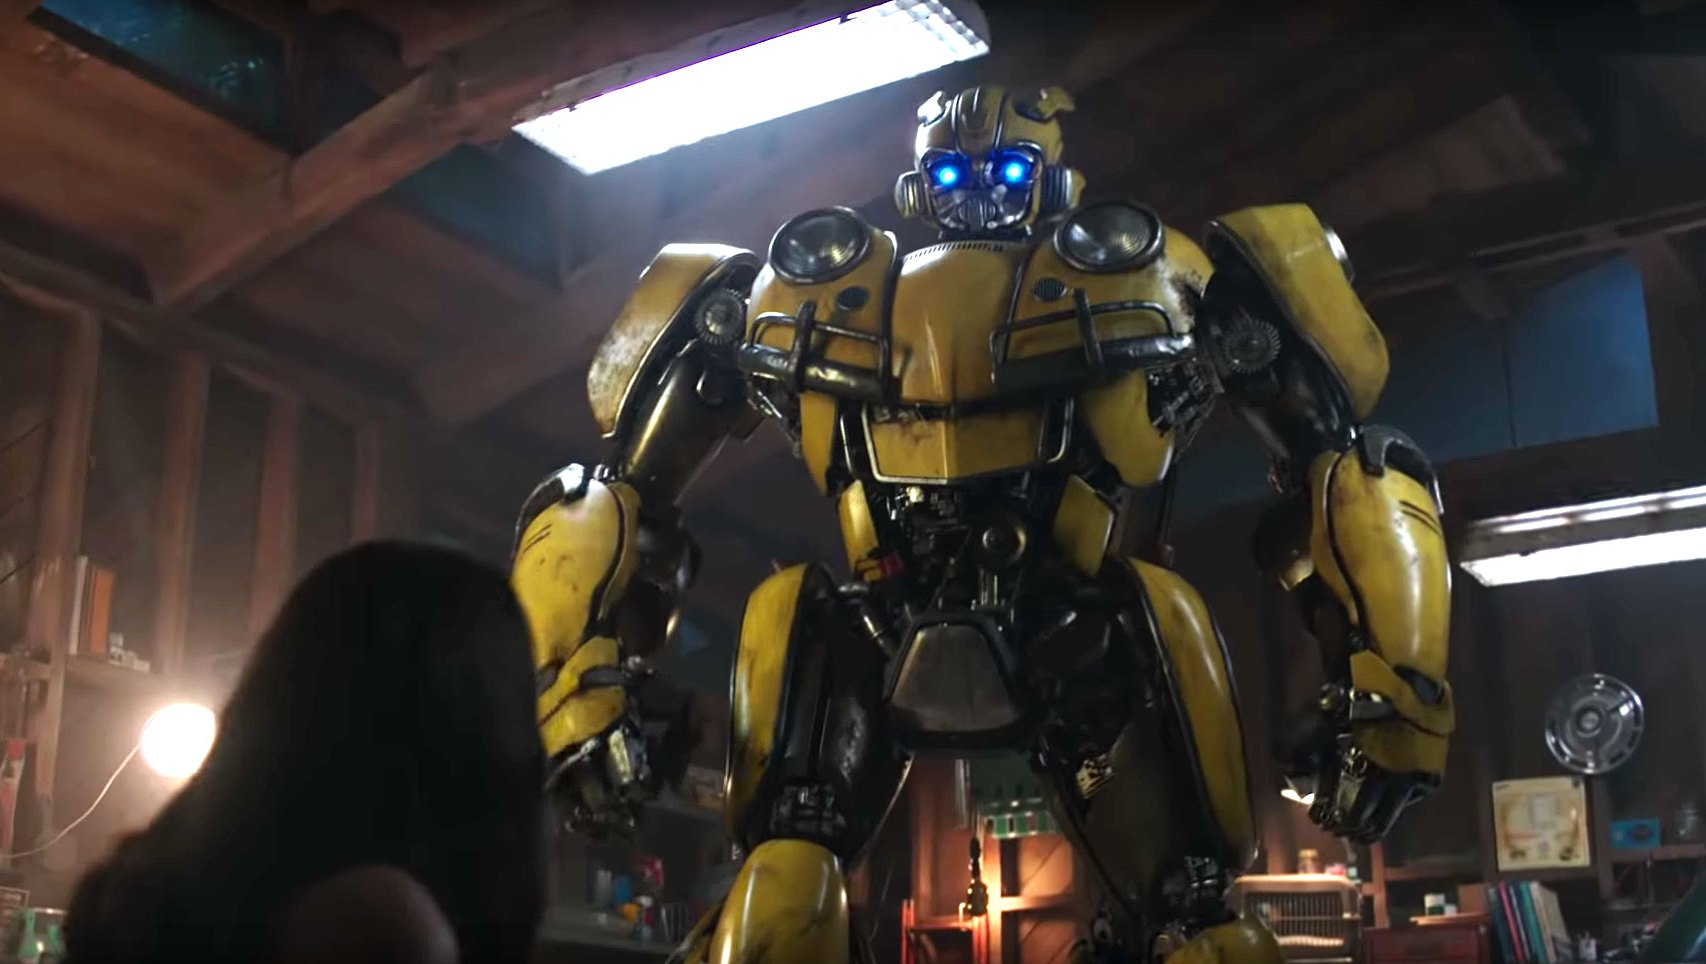 'Bumblebee' Review: Why Hailee Steinfeld's Transformers Flick Deserves Good Buzz